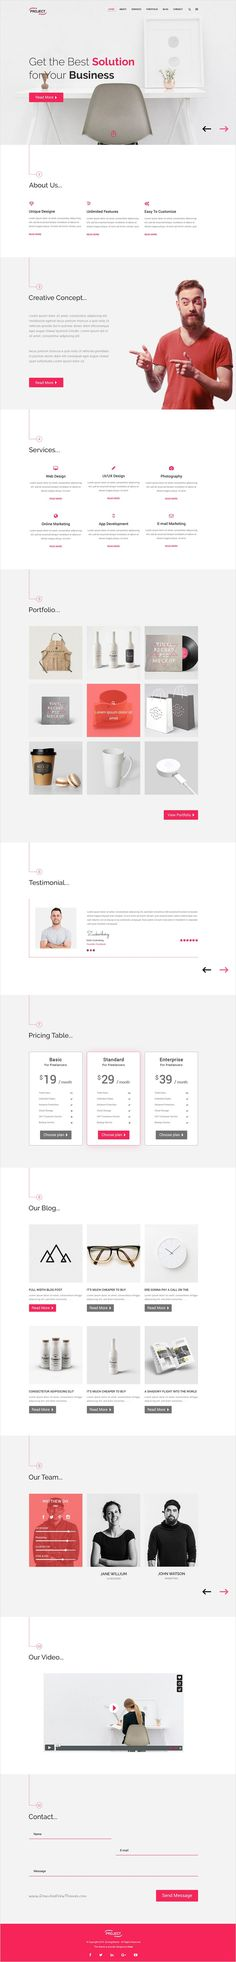 Project is a wonderful premium #Photoshop #theme for your Agency, #Startup or Business website download now➩ https://themeforest.net/item/project-corporate-business-template/18477436?ref=Datasata